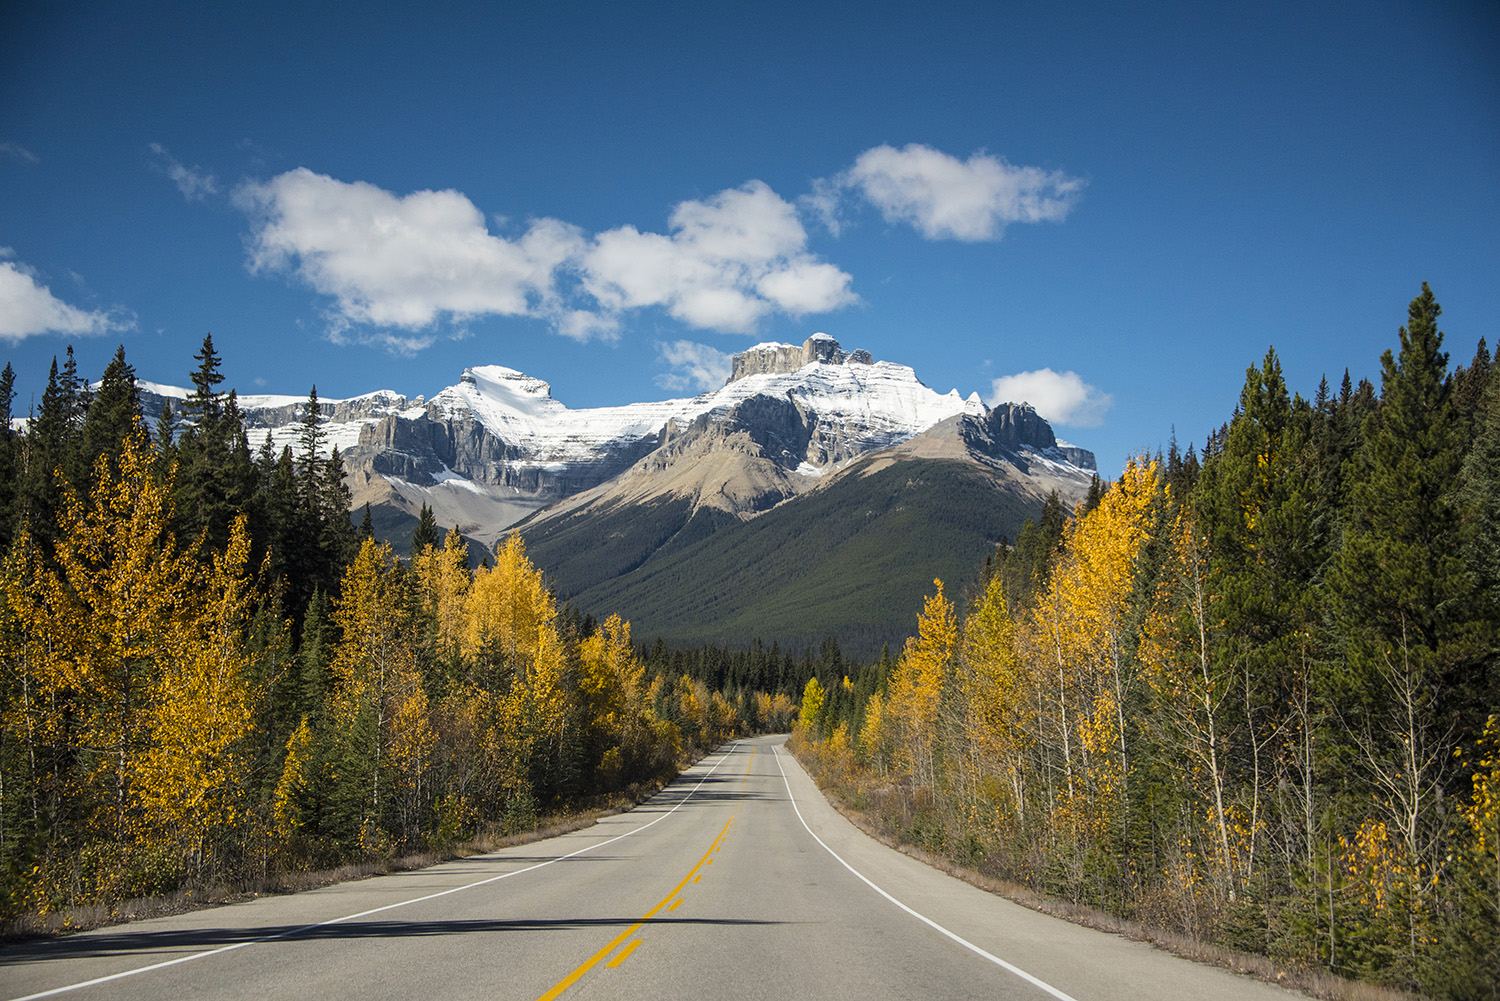 Road in Banff, Alberta